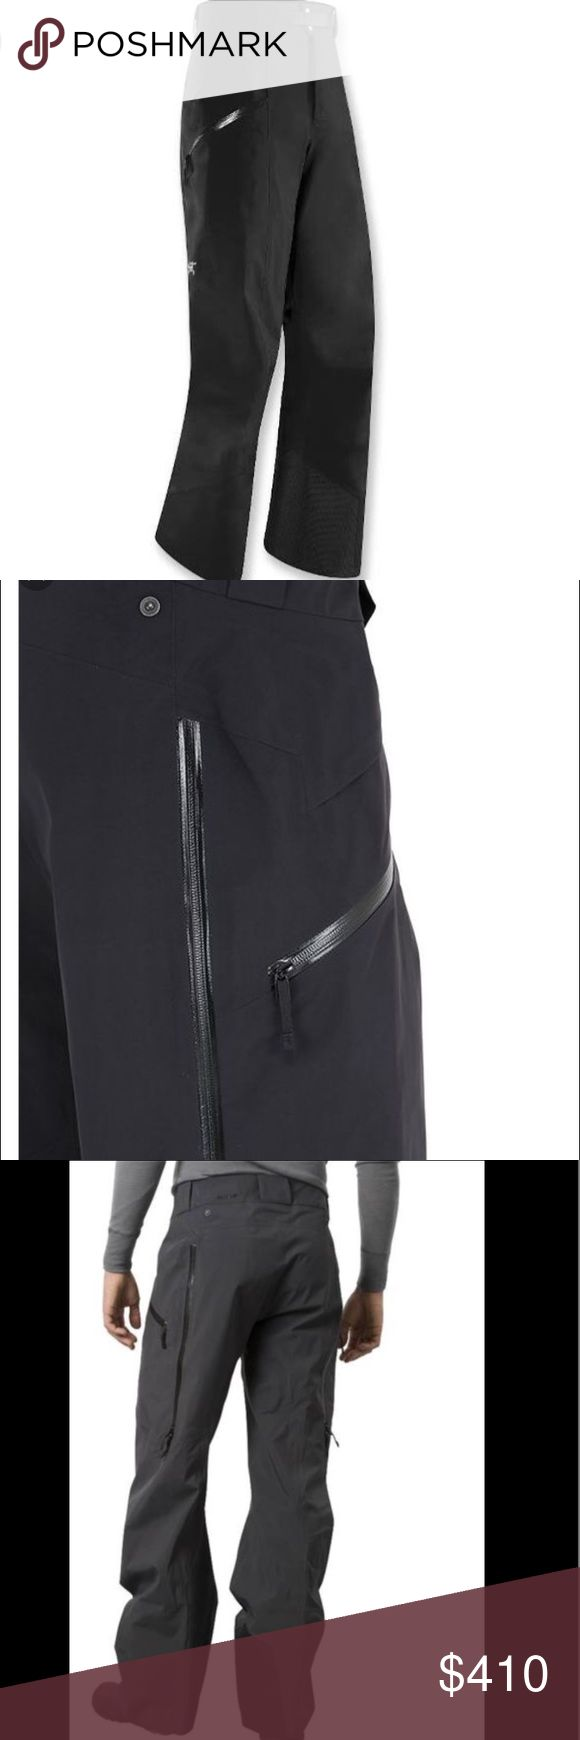 Men's Arc'terxy Sabre Ski Pants (Gortex) Gift for my fiancé for Christmas- Worn twice- too small. Won't accept for return since worn. Gore-Tex® pants combine a relaxed fit with clean lines. Waterproof, breathable N80p-X 3-layer Gore-Tex fabric is strong and water-repellent Soft flannel backer adds light warmth Fly with snap; removable belt and belt loops Double WaterTight™ side zippers to vent Large-volume zippered thigh pockets with WaterTight zips Embedded RECCO® reflector can help speed…